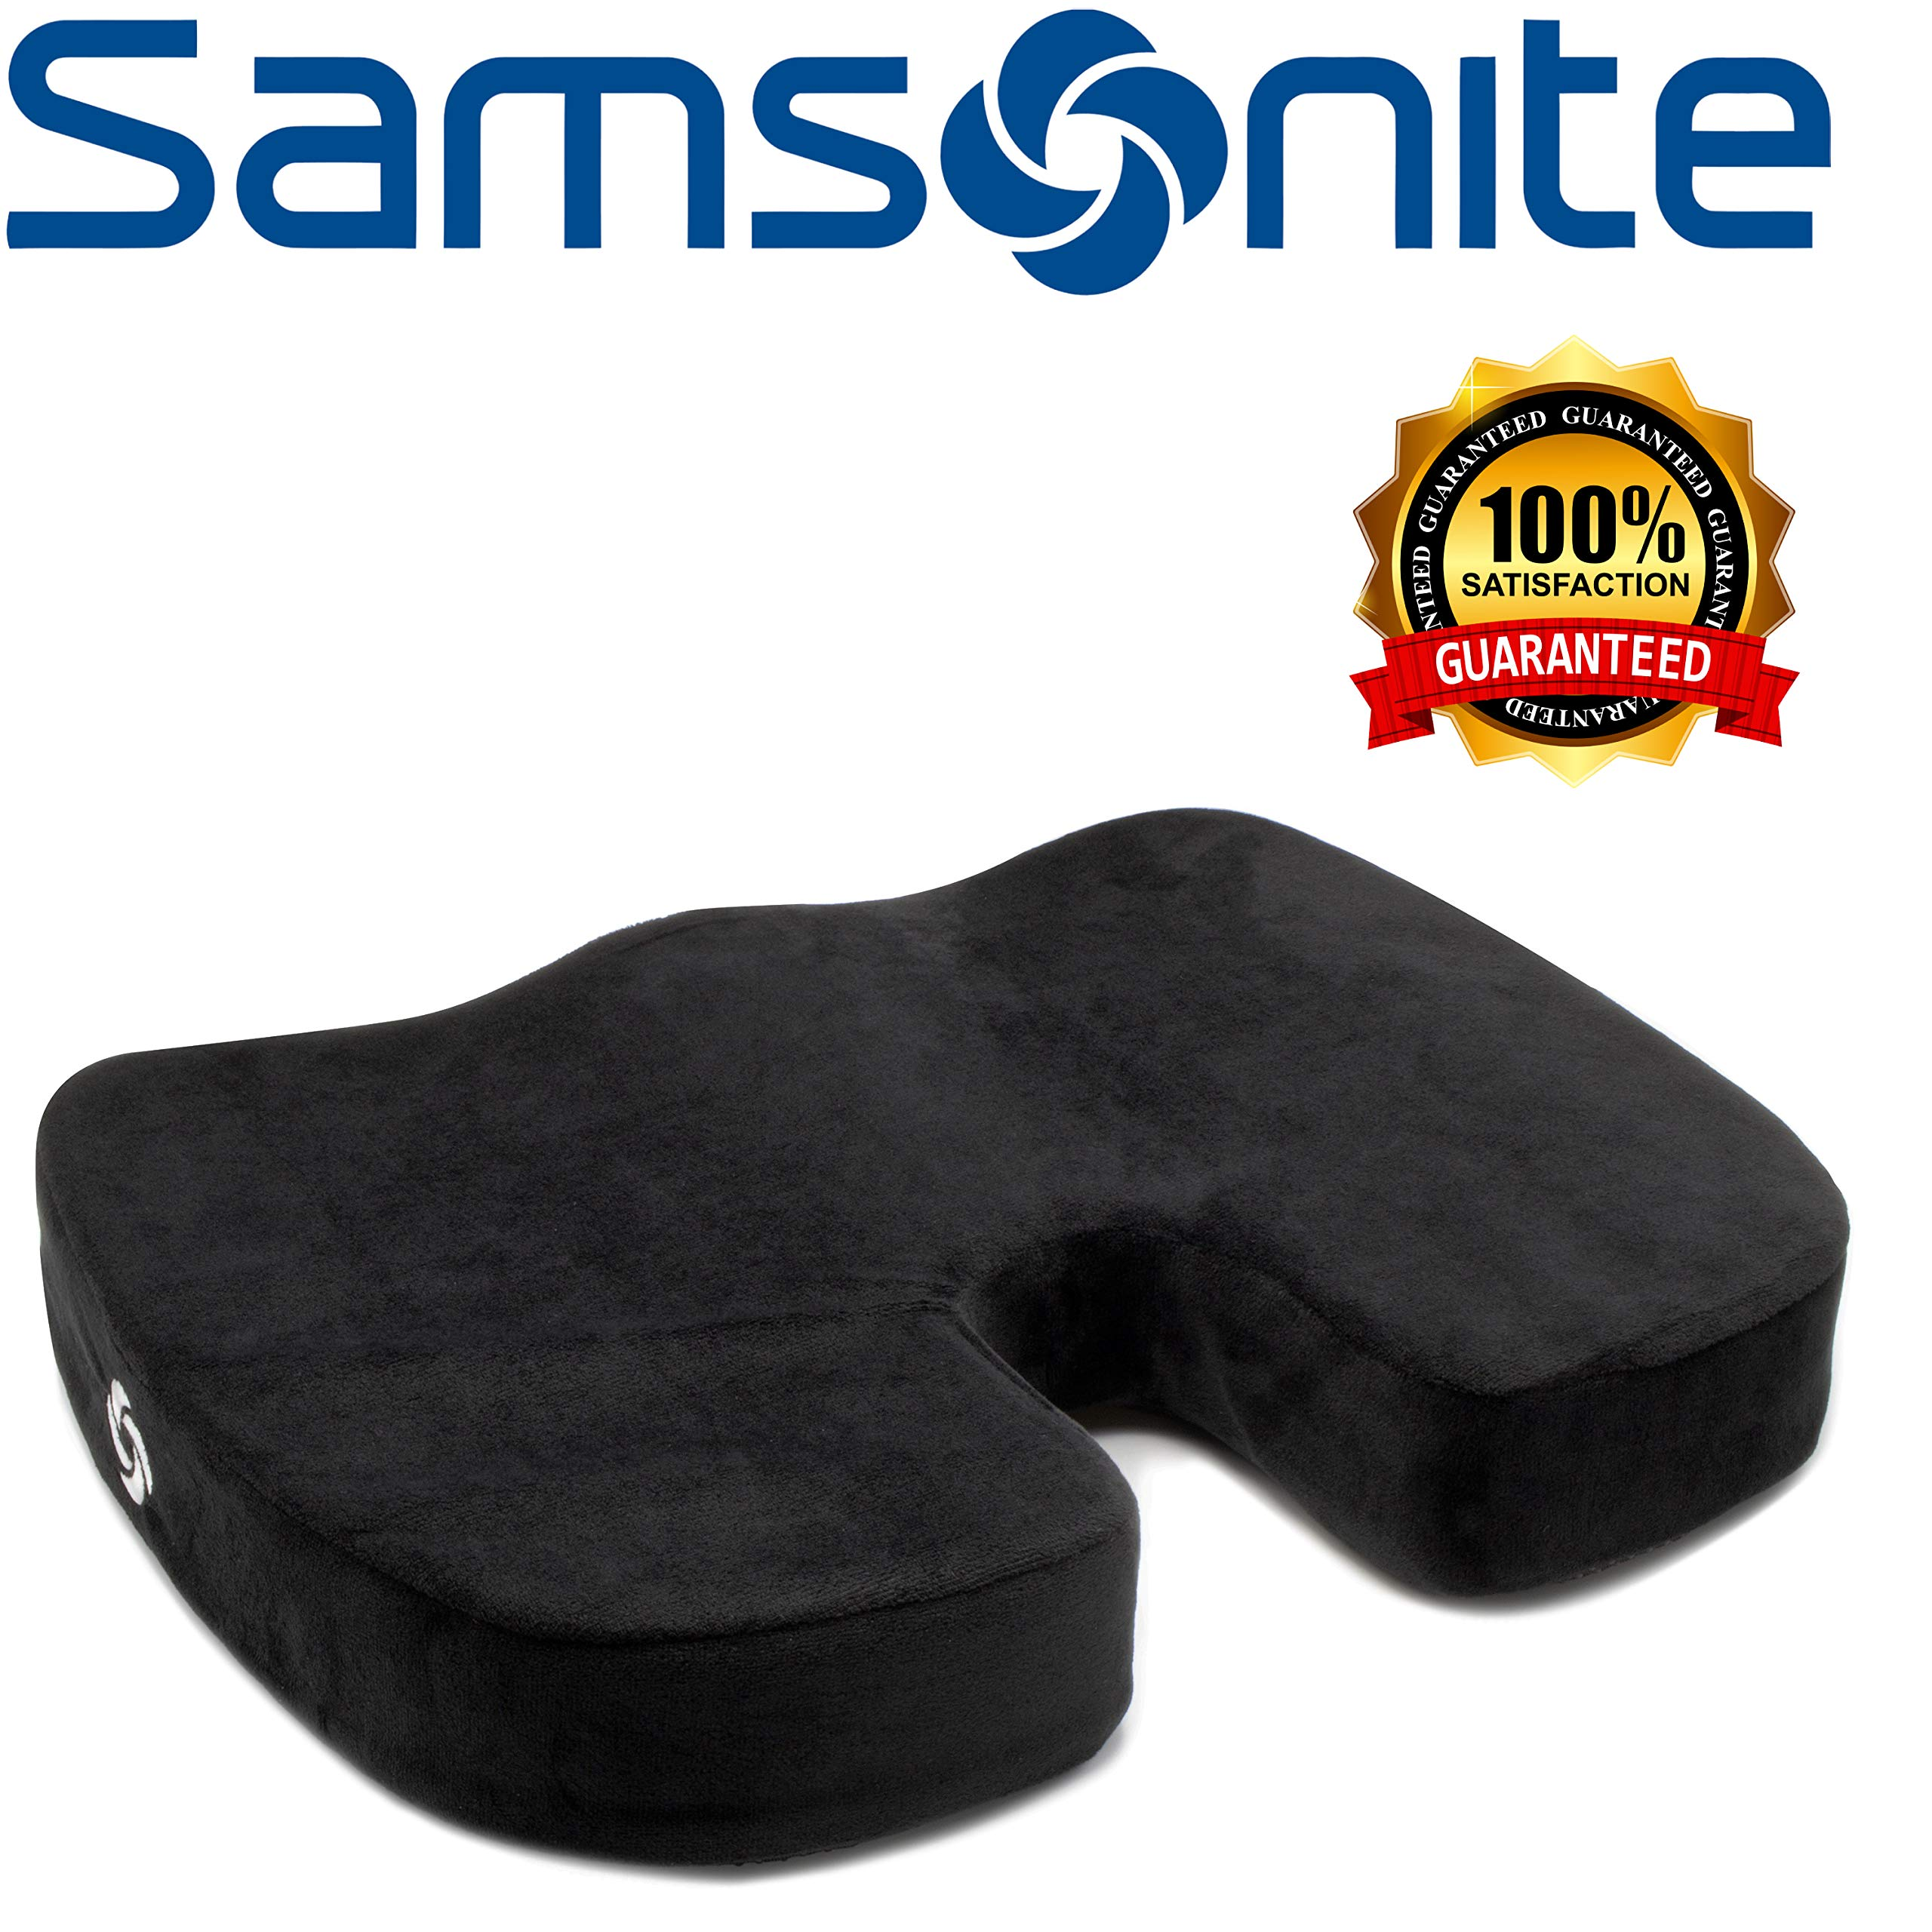 Samsonite SA5450 Orthopedic Cushion  Helps Relieve Pain  100% Pure Memory Foam  Fits Most Seats